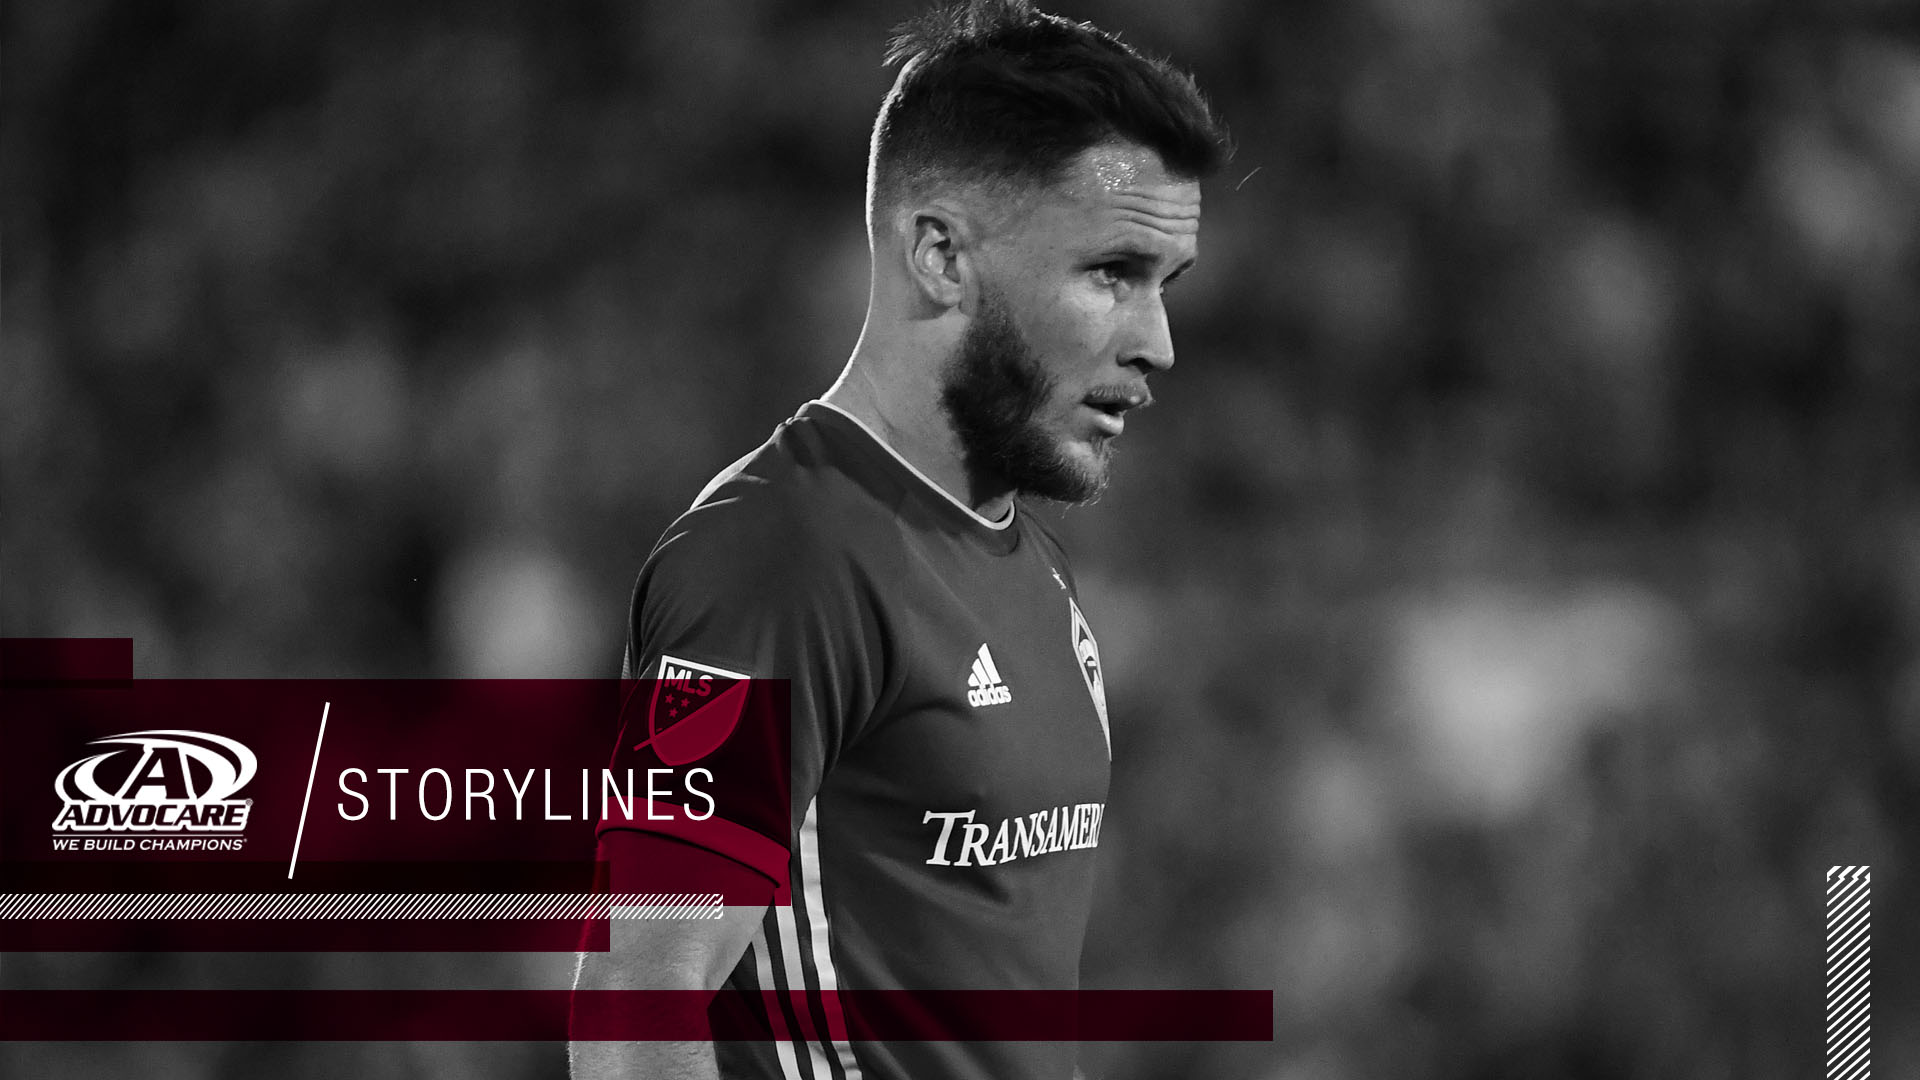 Philadelphia Union vs Colorado Rapids AdvoCare Storylines May 1920x1080